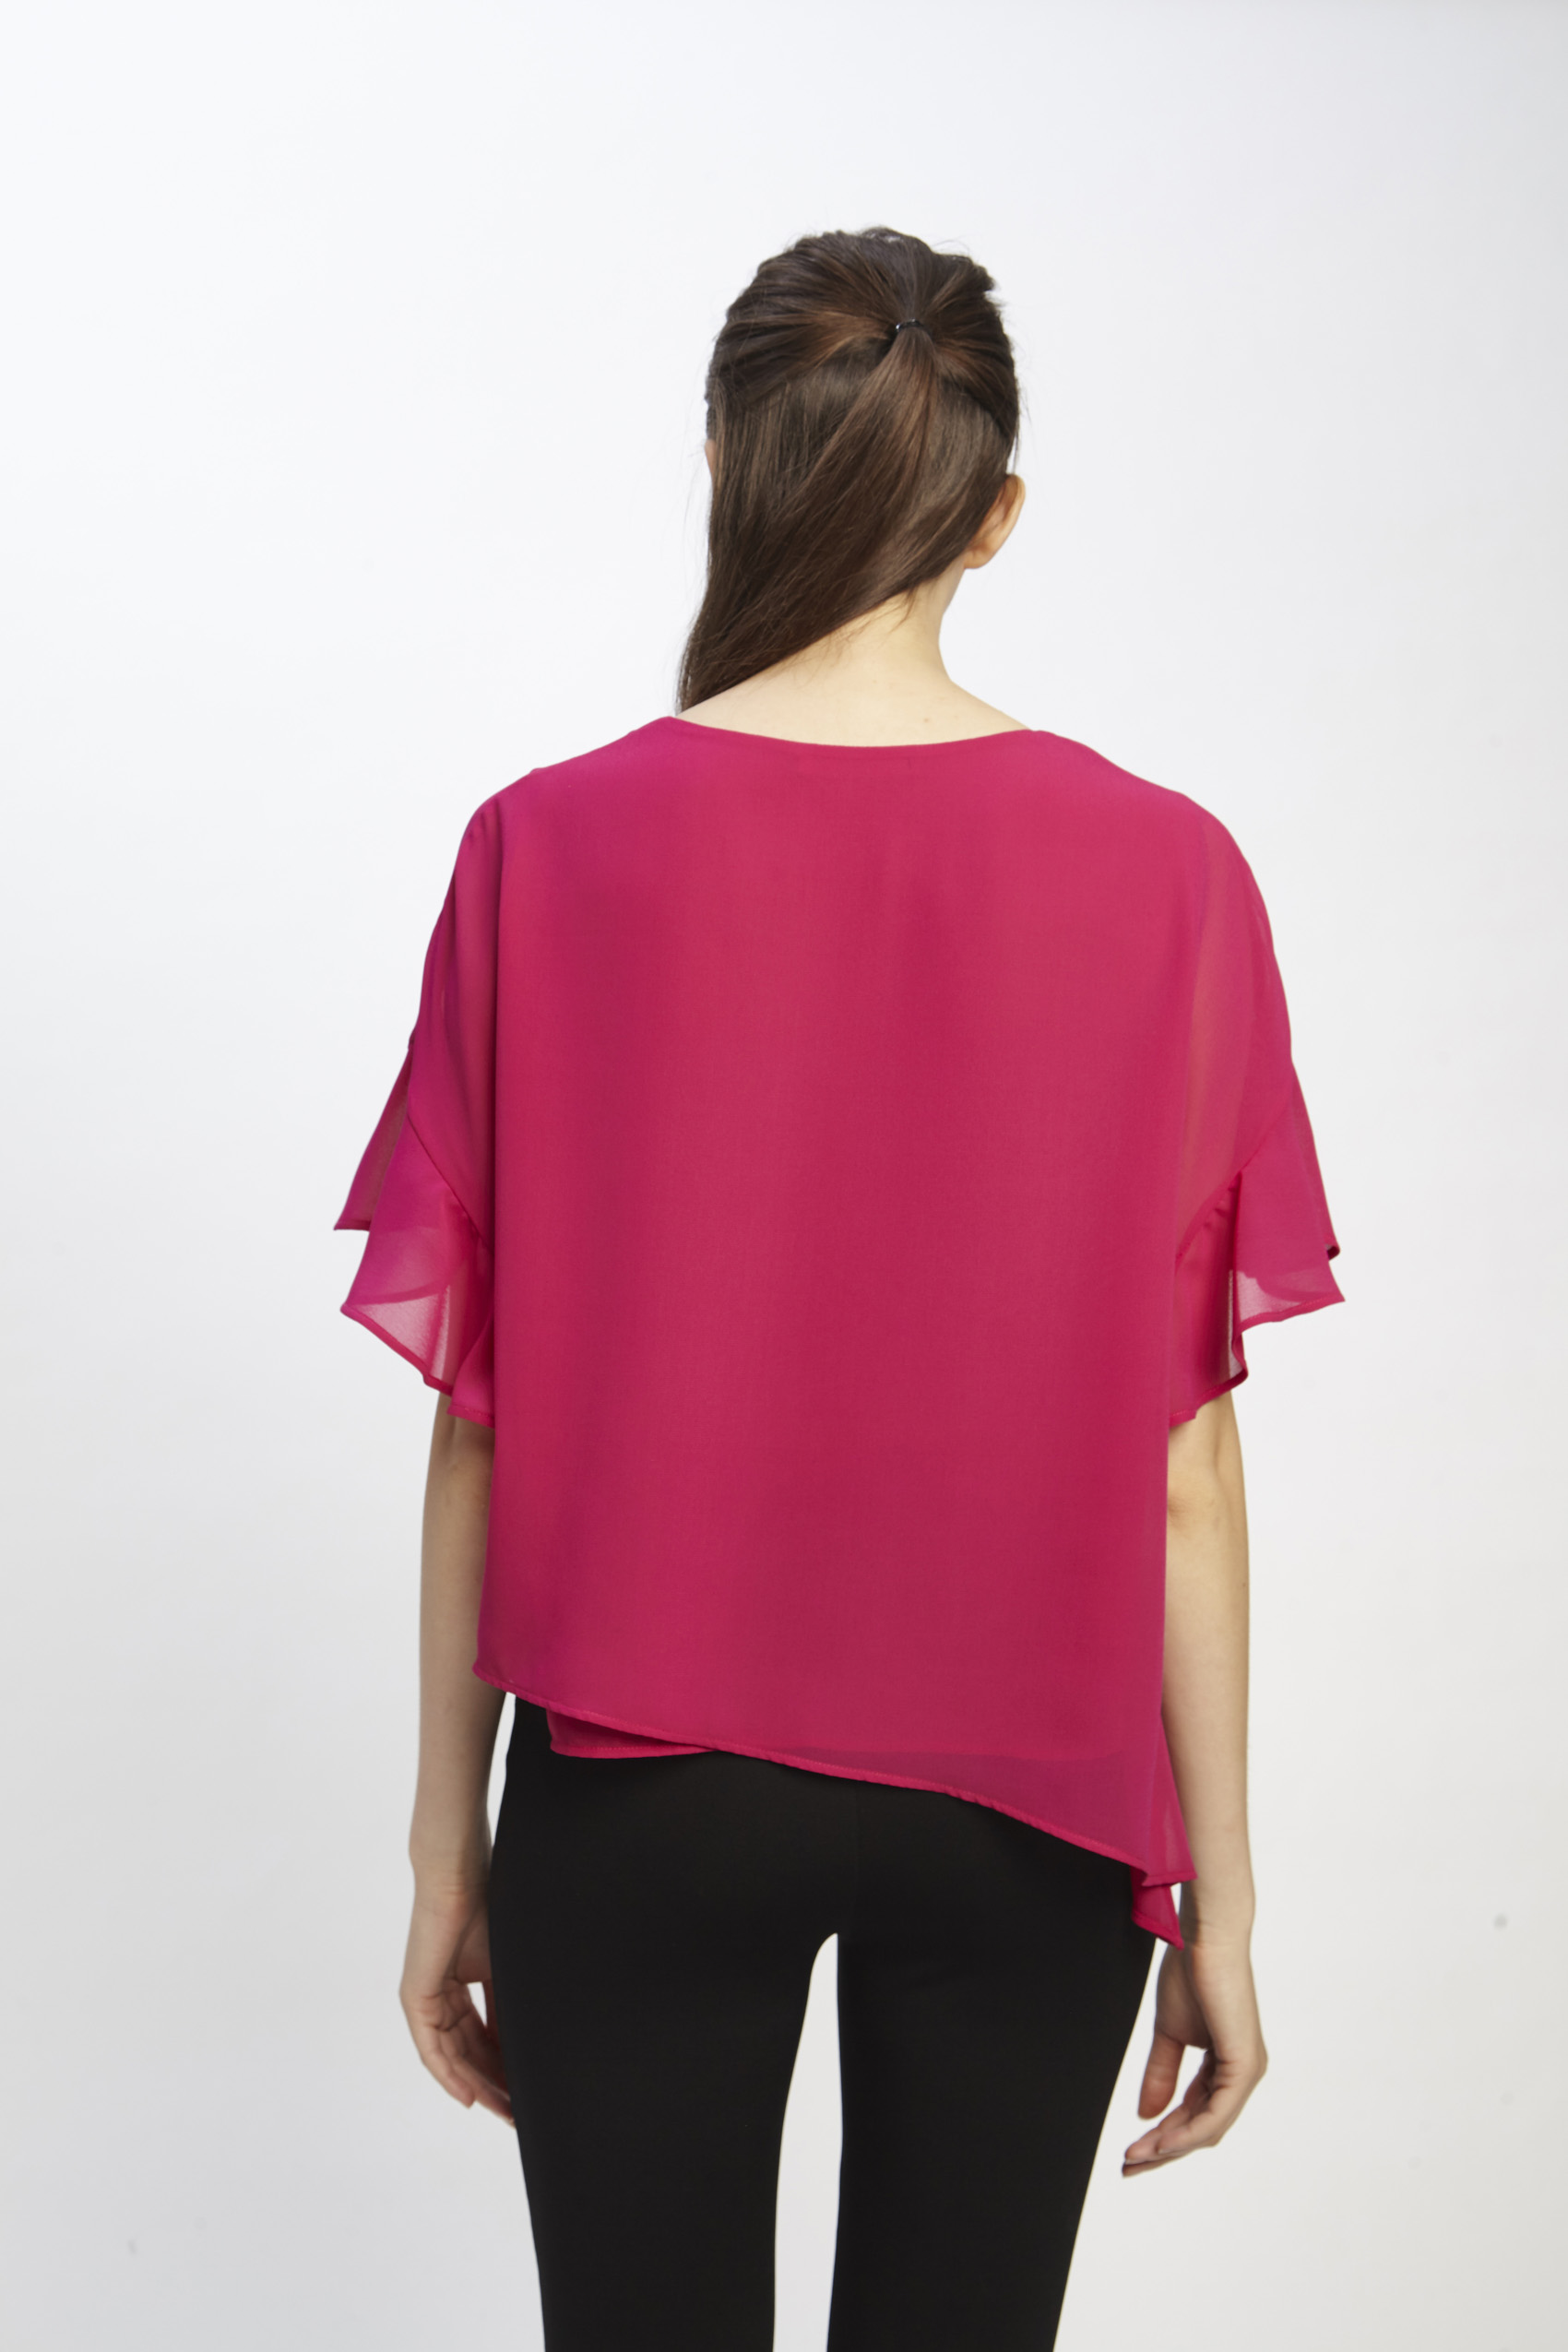 awada_blusa-candy_49-23-2019__picture-1887